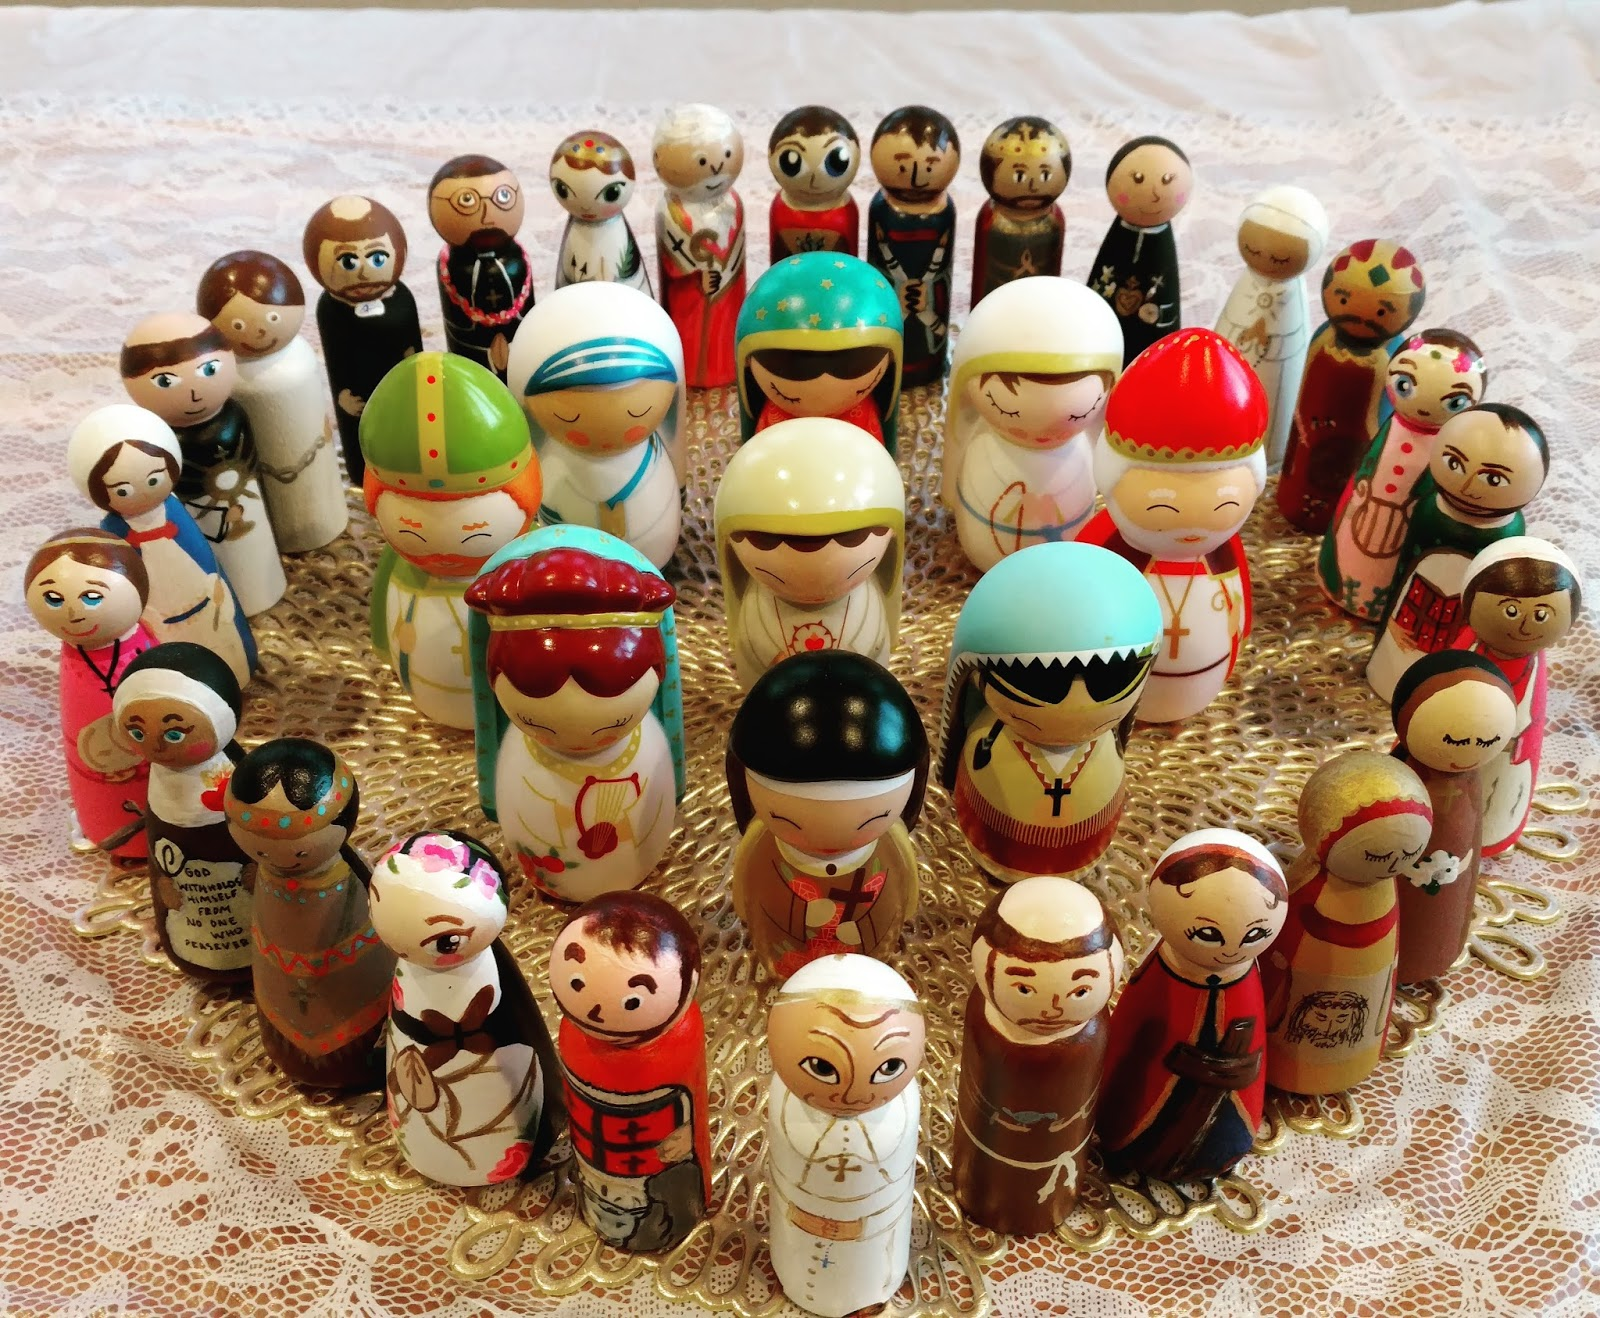 ... All The Peg Dolls That I Received A Few Years Ago At A Saint Peg Doll  Exchange And The Various Shining Light Dolls We Have Collected Through The  Years.